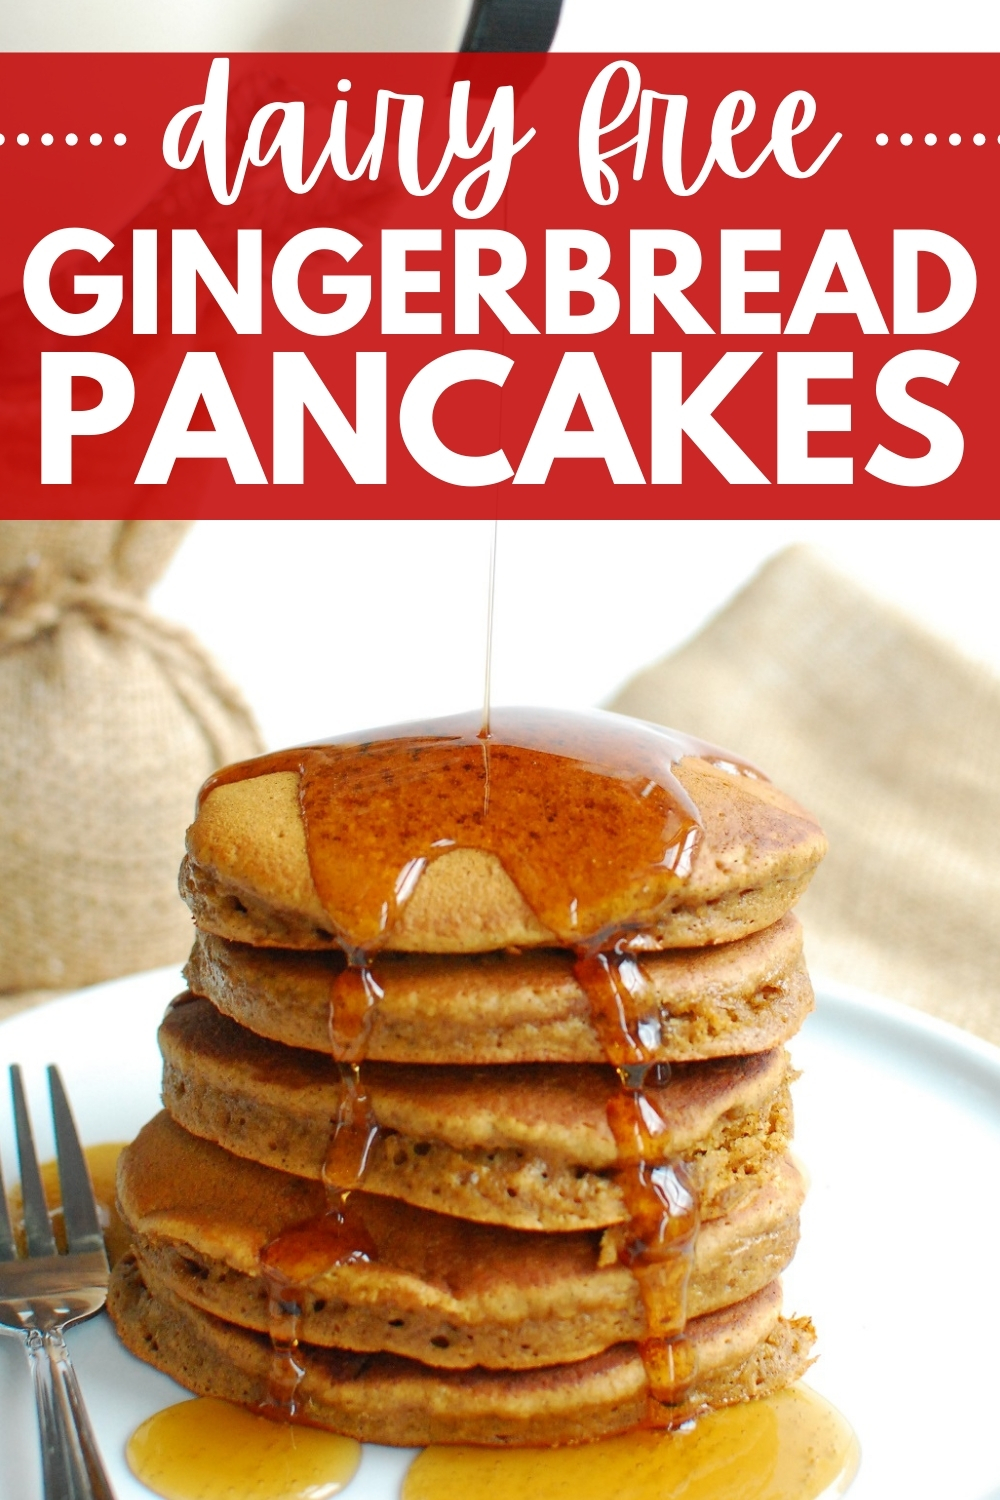 a stack of gingerbread pancakes with syrup being poured over the top